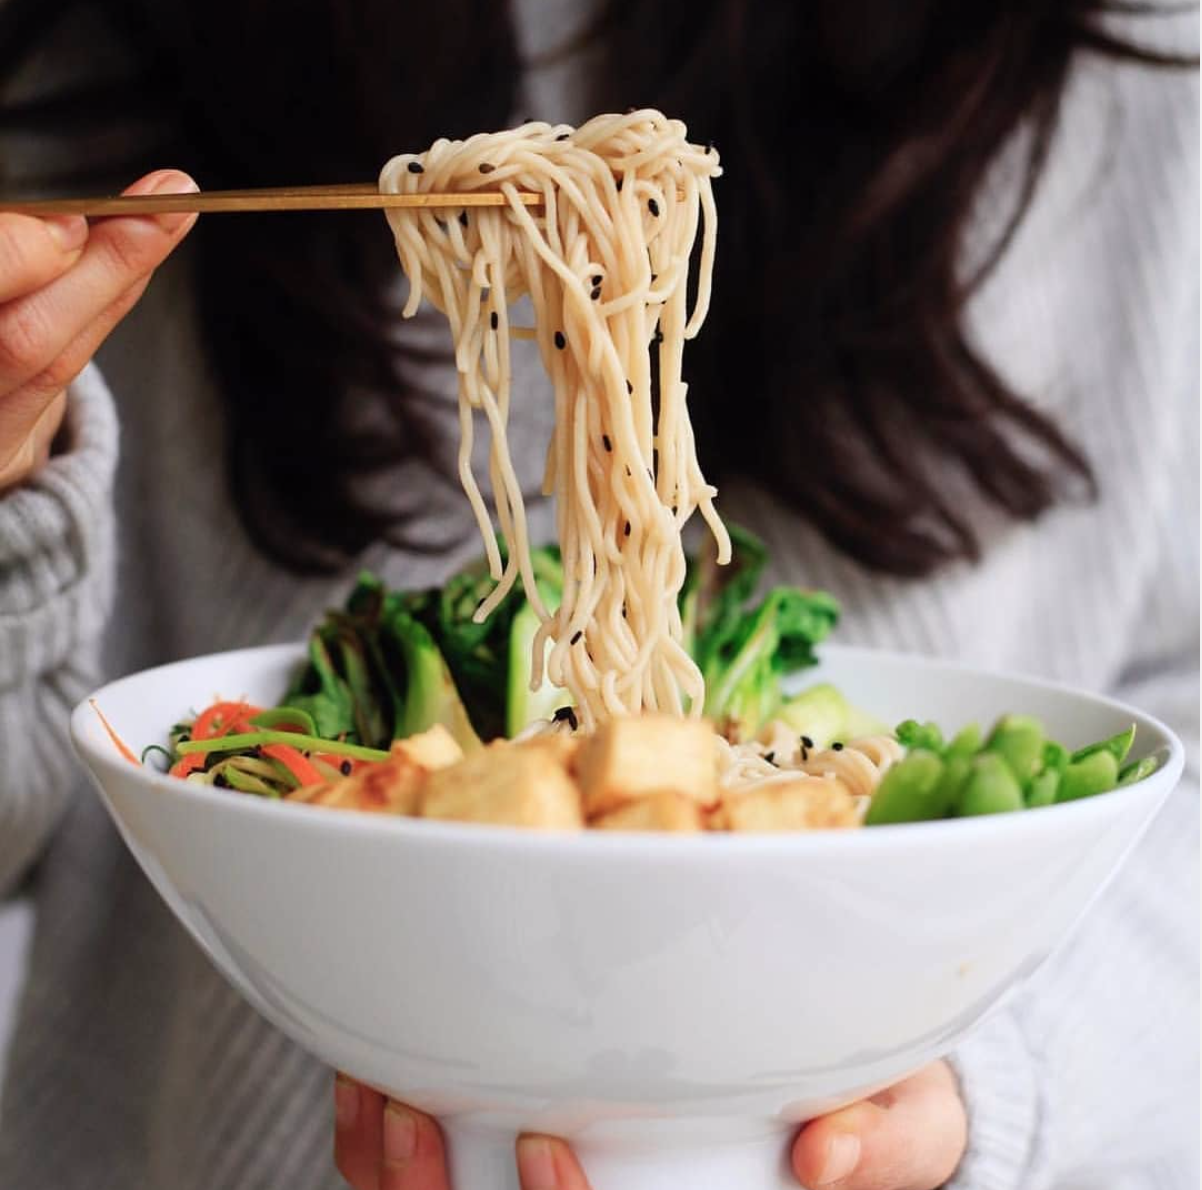 These Organic Whole Grain Ramen Noodles from Lotus Foods